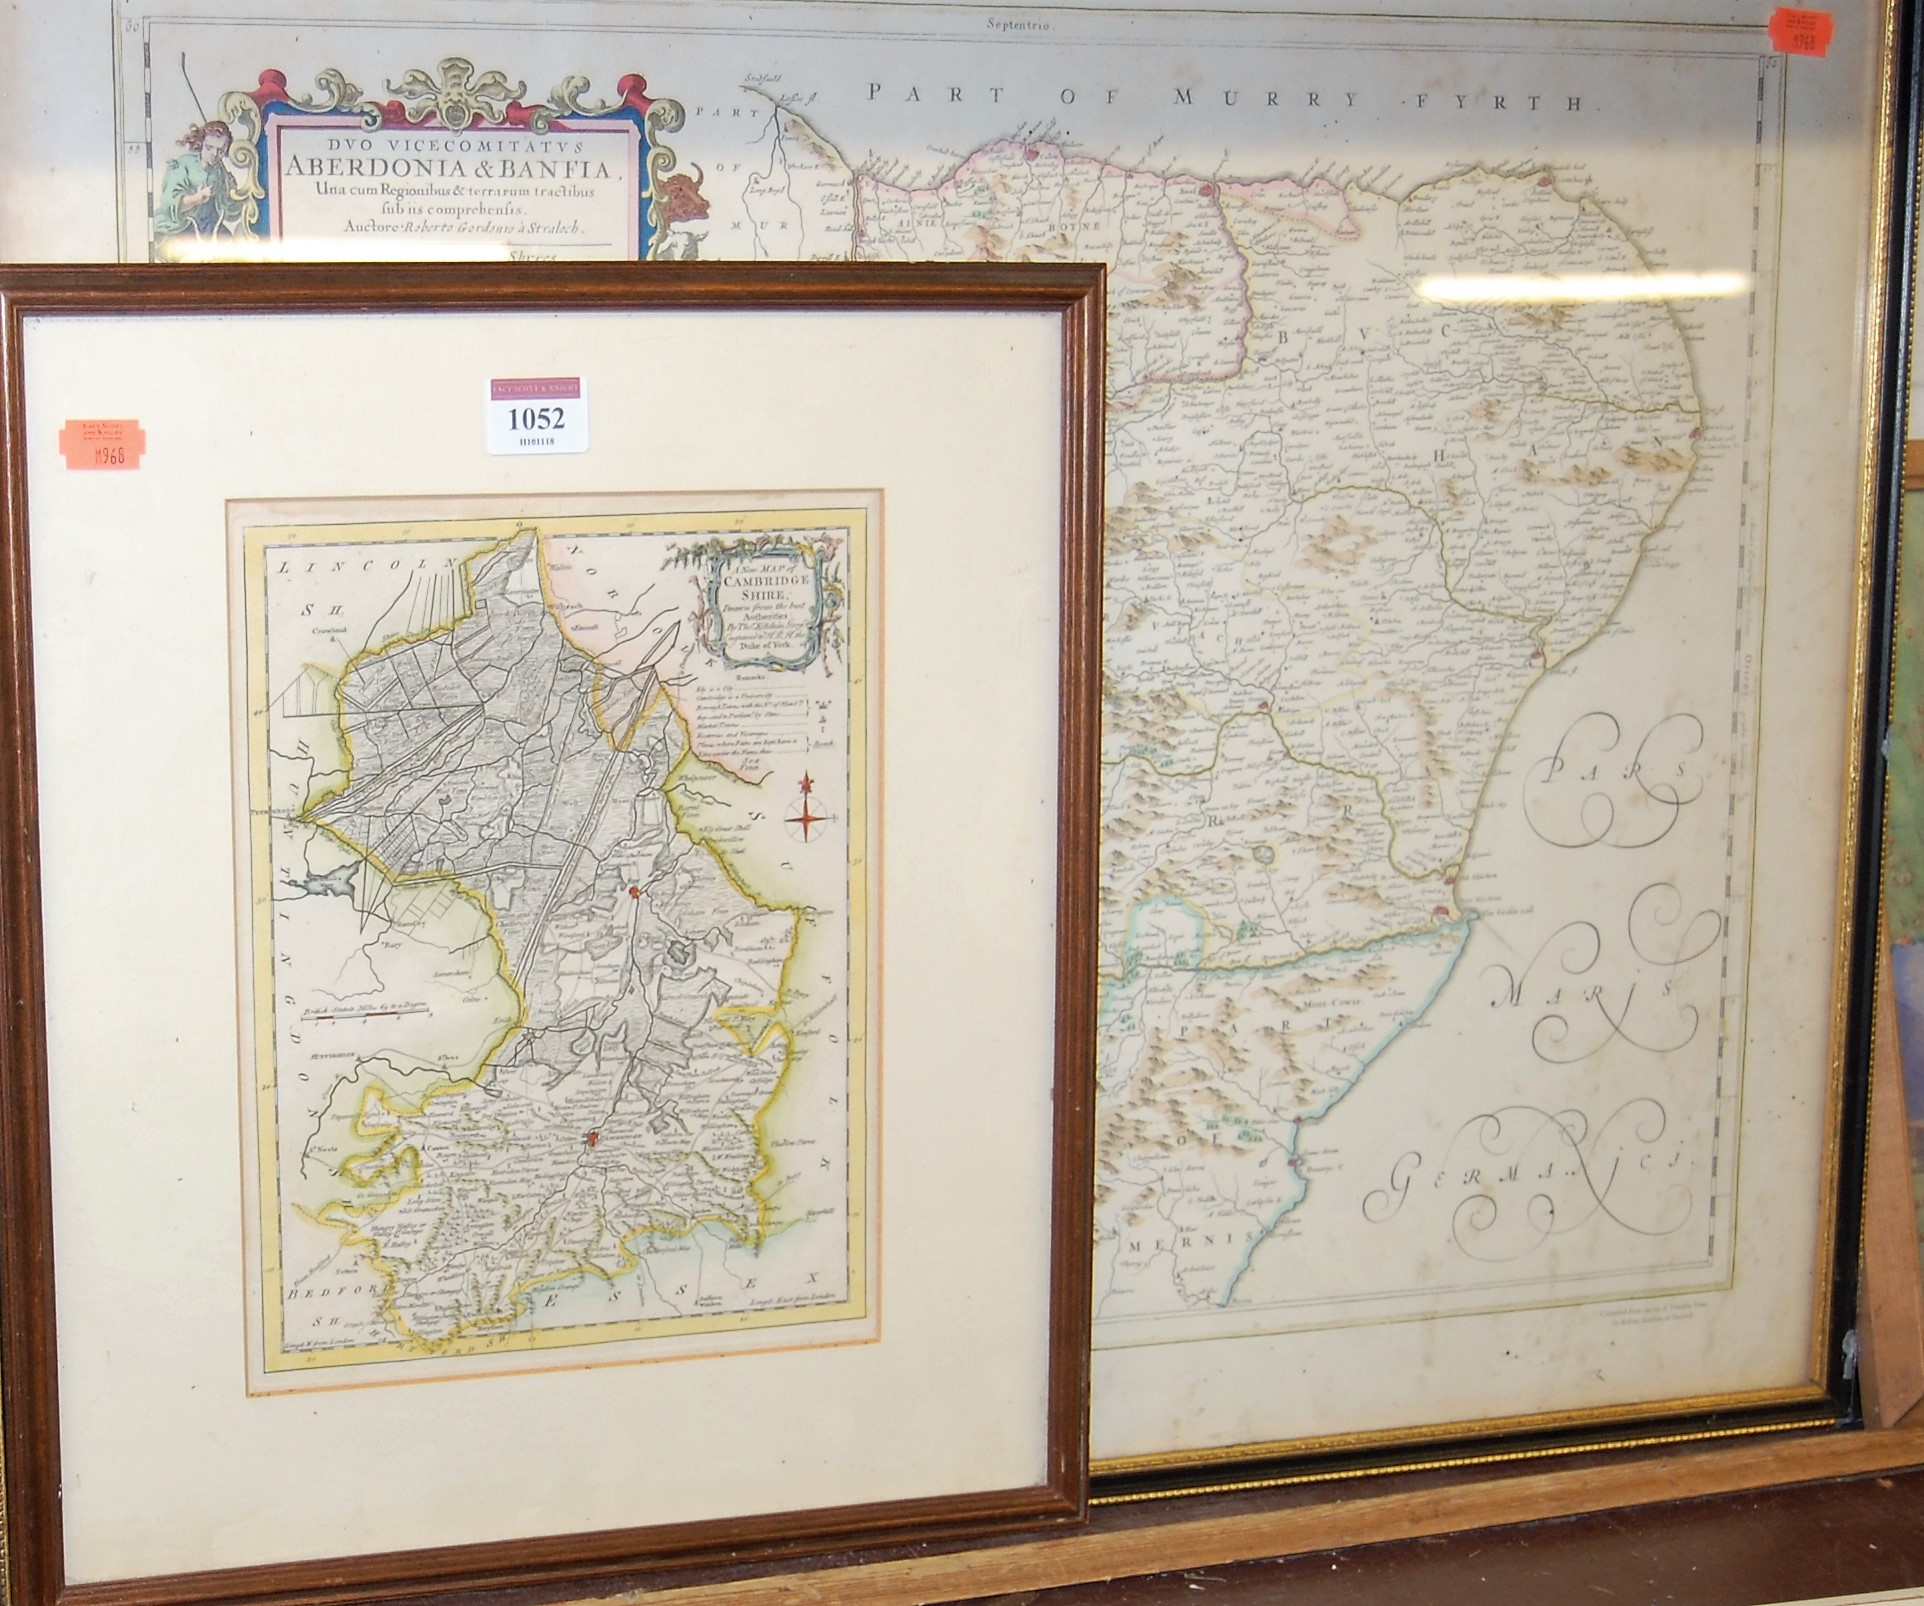 Lot 1052 - Thomas Kitchin - New map of Cambridgeshire, engraving with later hand-coloured borders, 26 x 20cm;